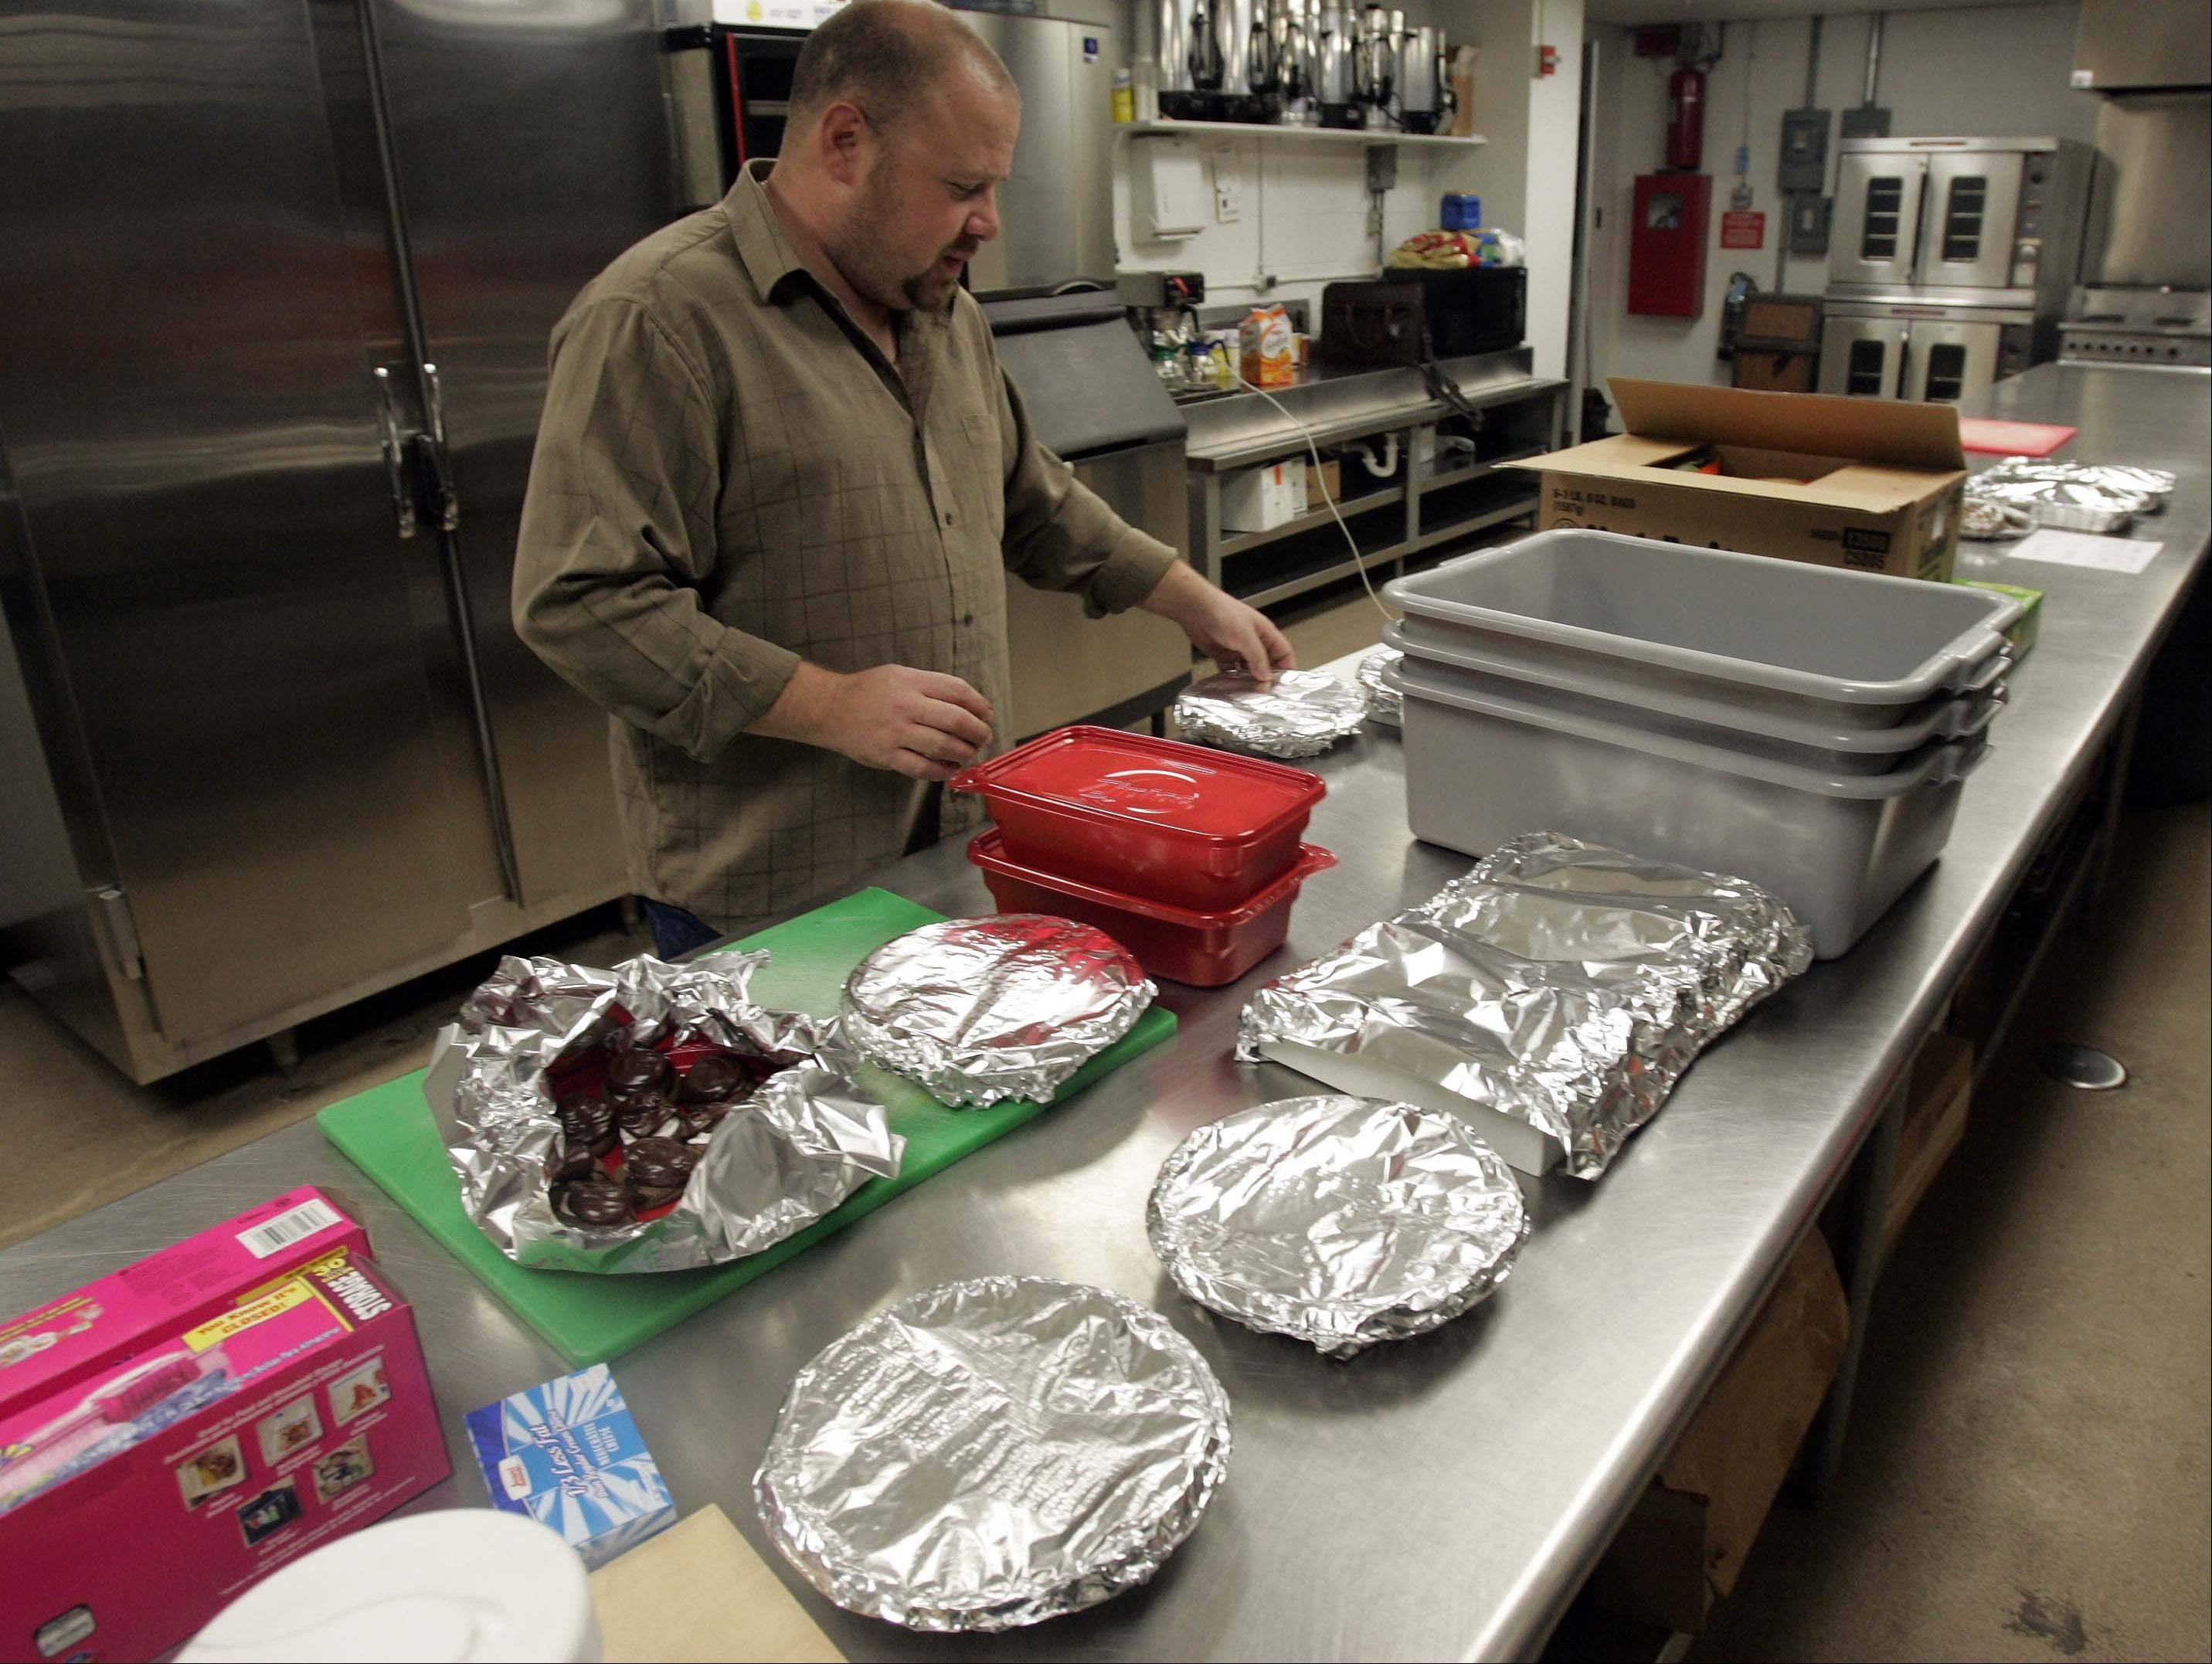 Jeff Turner of In The Neighborhood Deli & Cafe organizes just a few of the desserts for Elgin's Thanksgiving Community Dinner at the Hemmens Cultural Center. Turner gets help from 200 volunteers to staff the event each Thanksgiving.